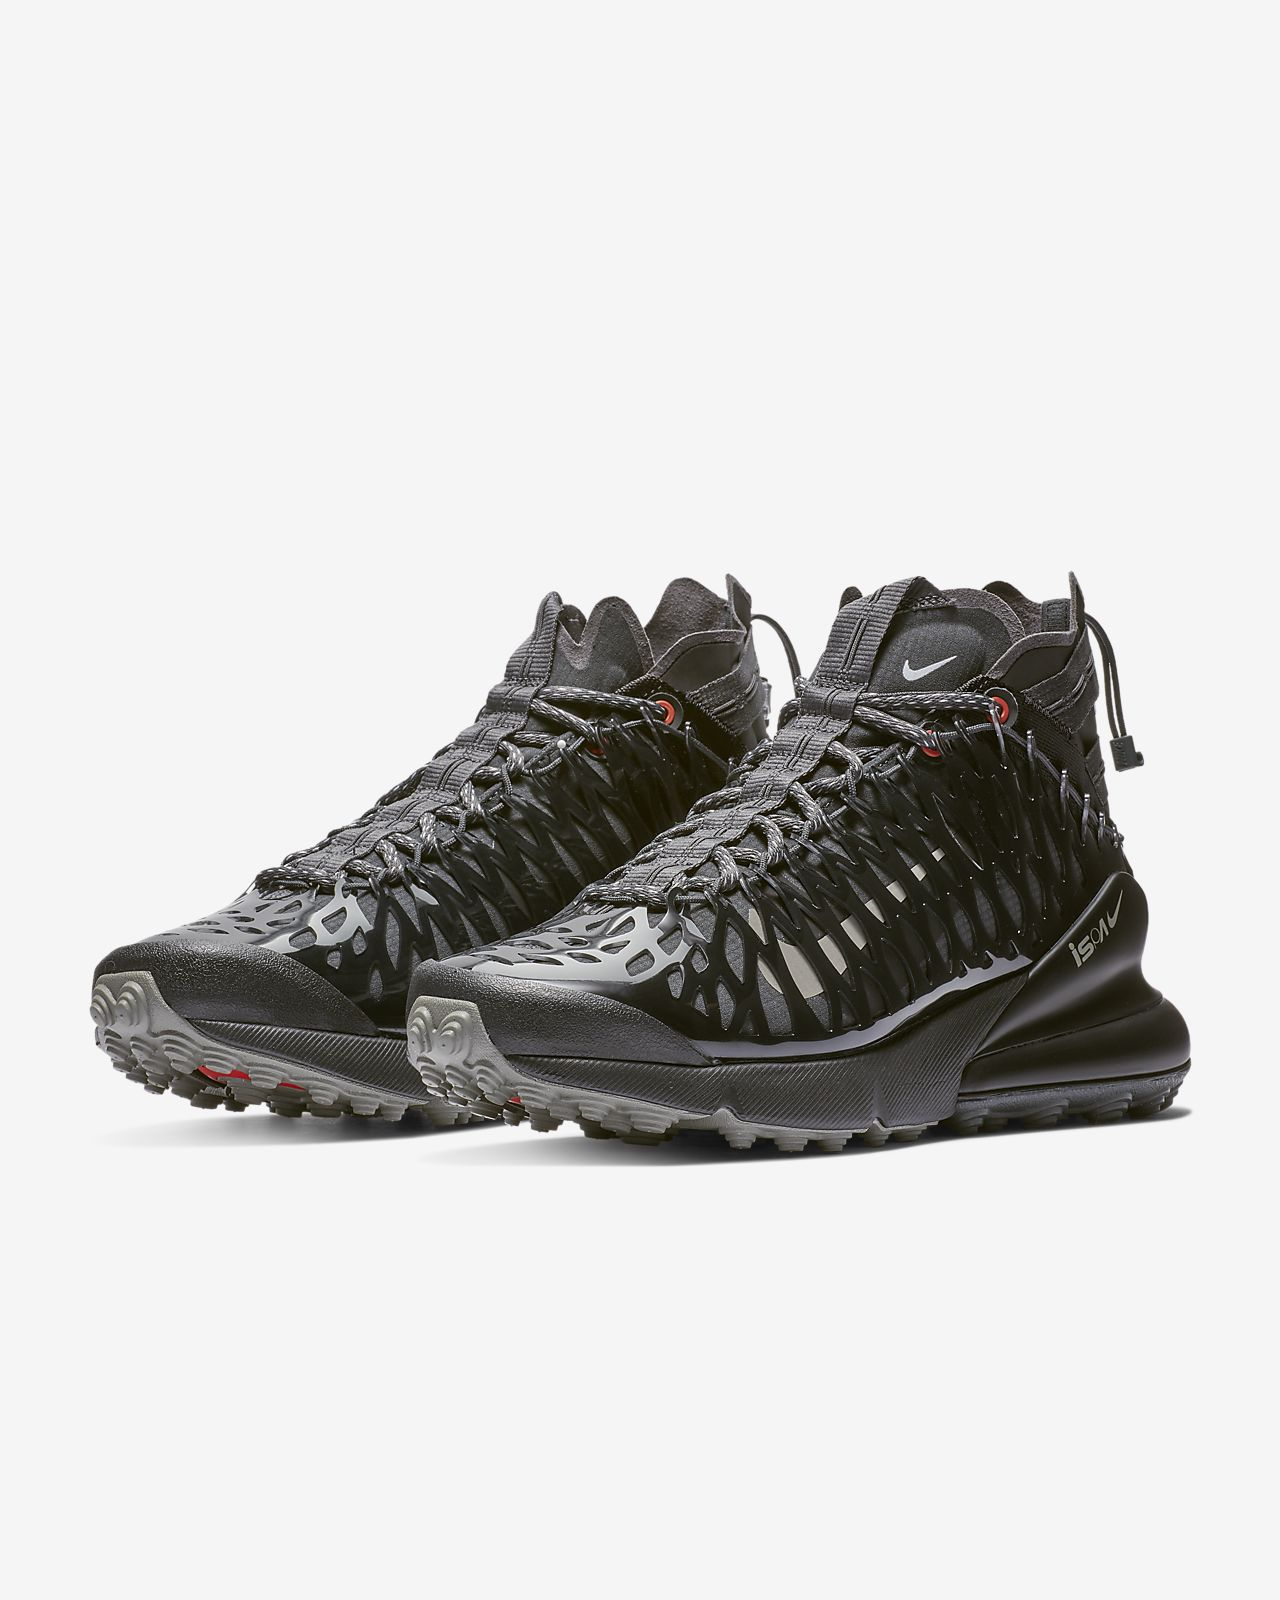 b0c6efa668d7 Nike Air Max 270 ISPA Men s Shoe. Nike.com